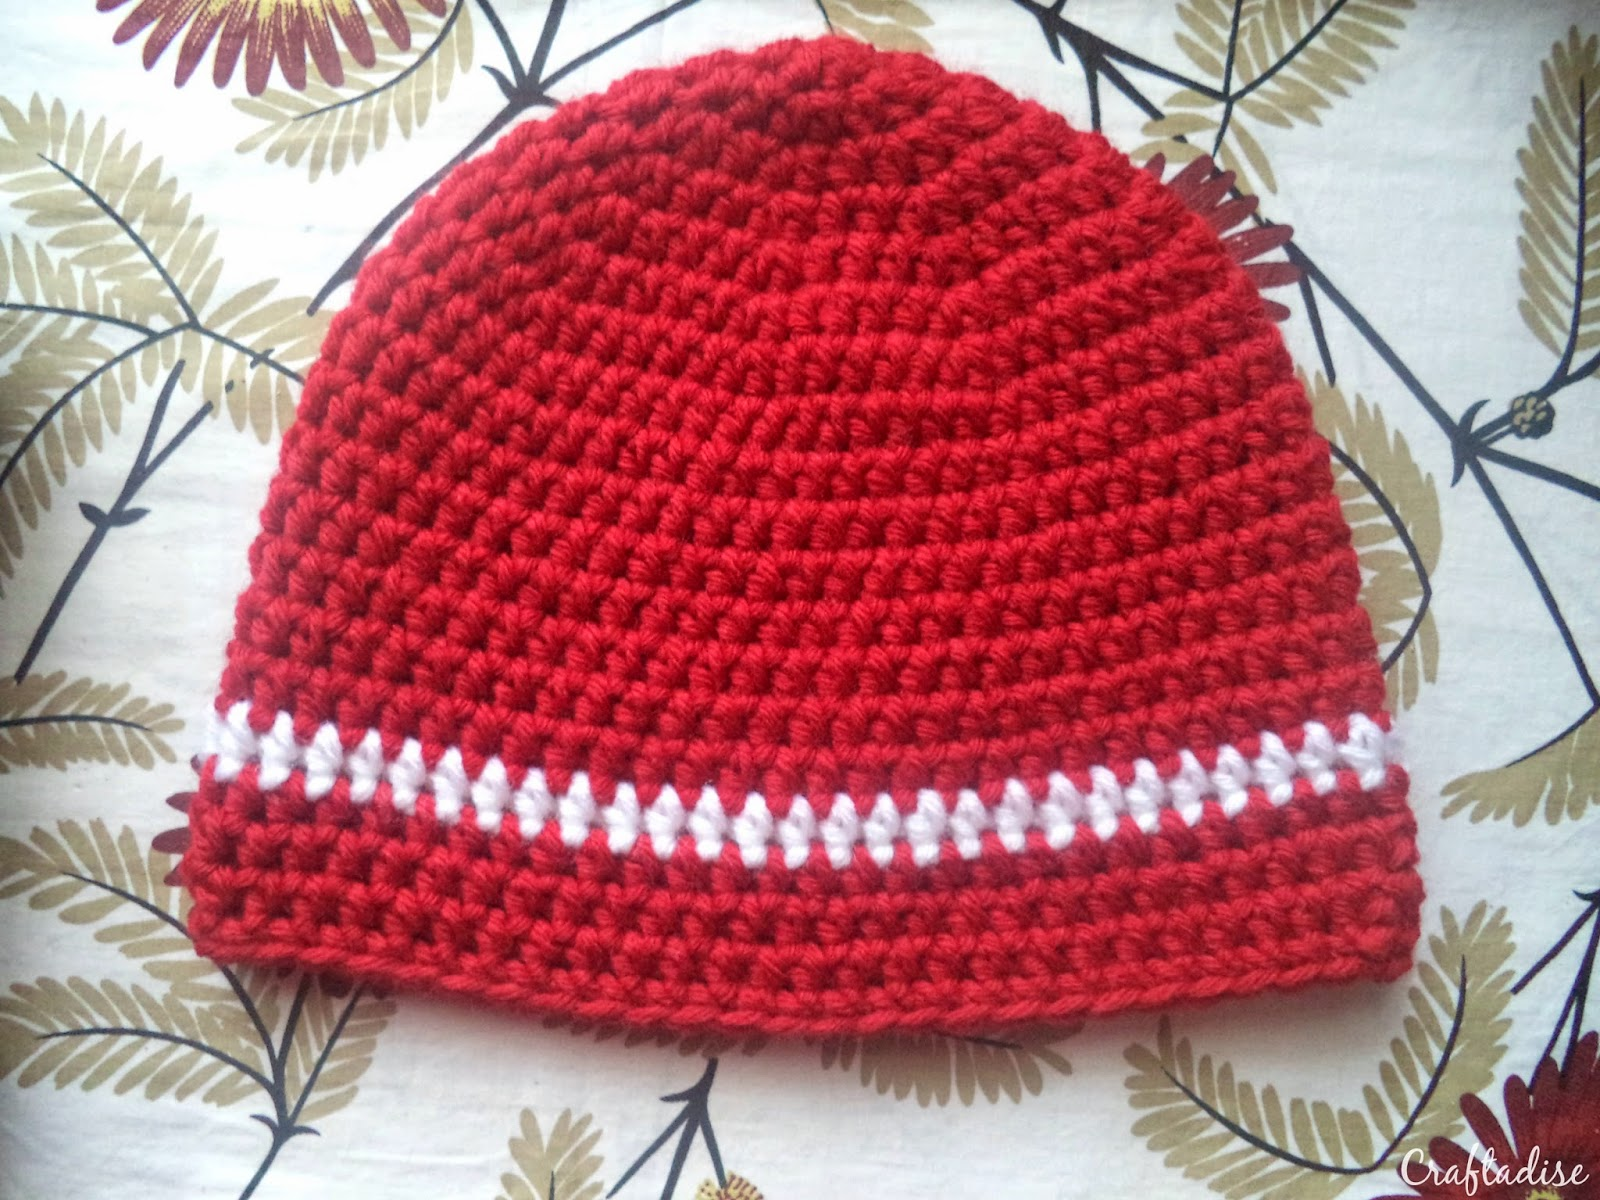 Free Crochet Pattern: Half Double Crochet Arsenal Hat - Part 1